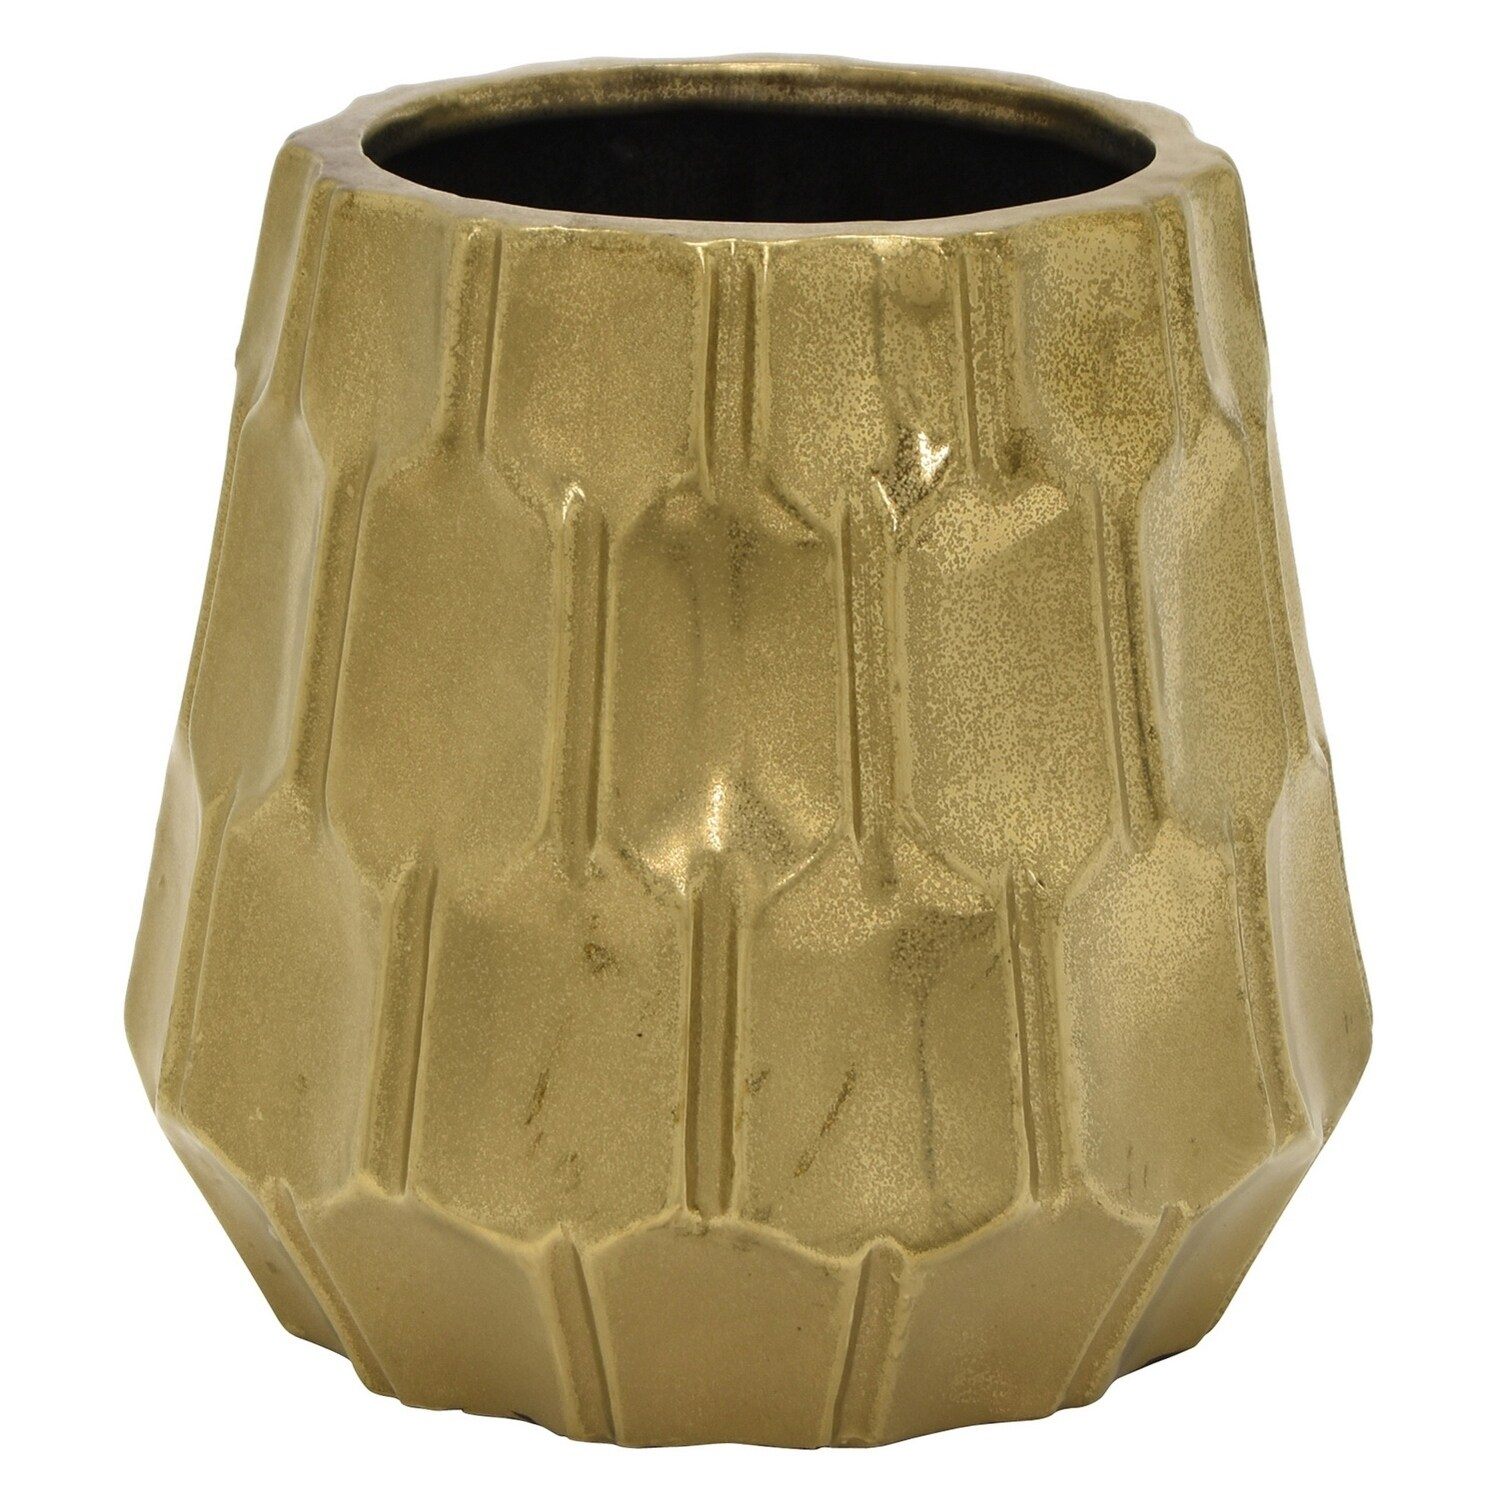 Vase Gold Three Hands Ceramic Vase Gold